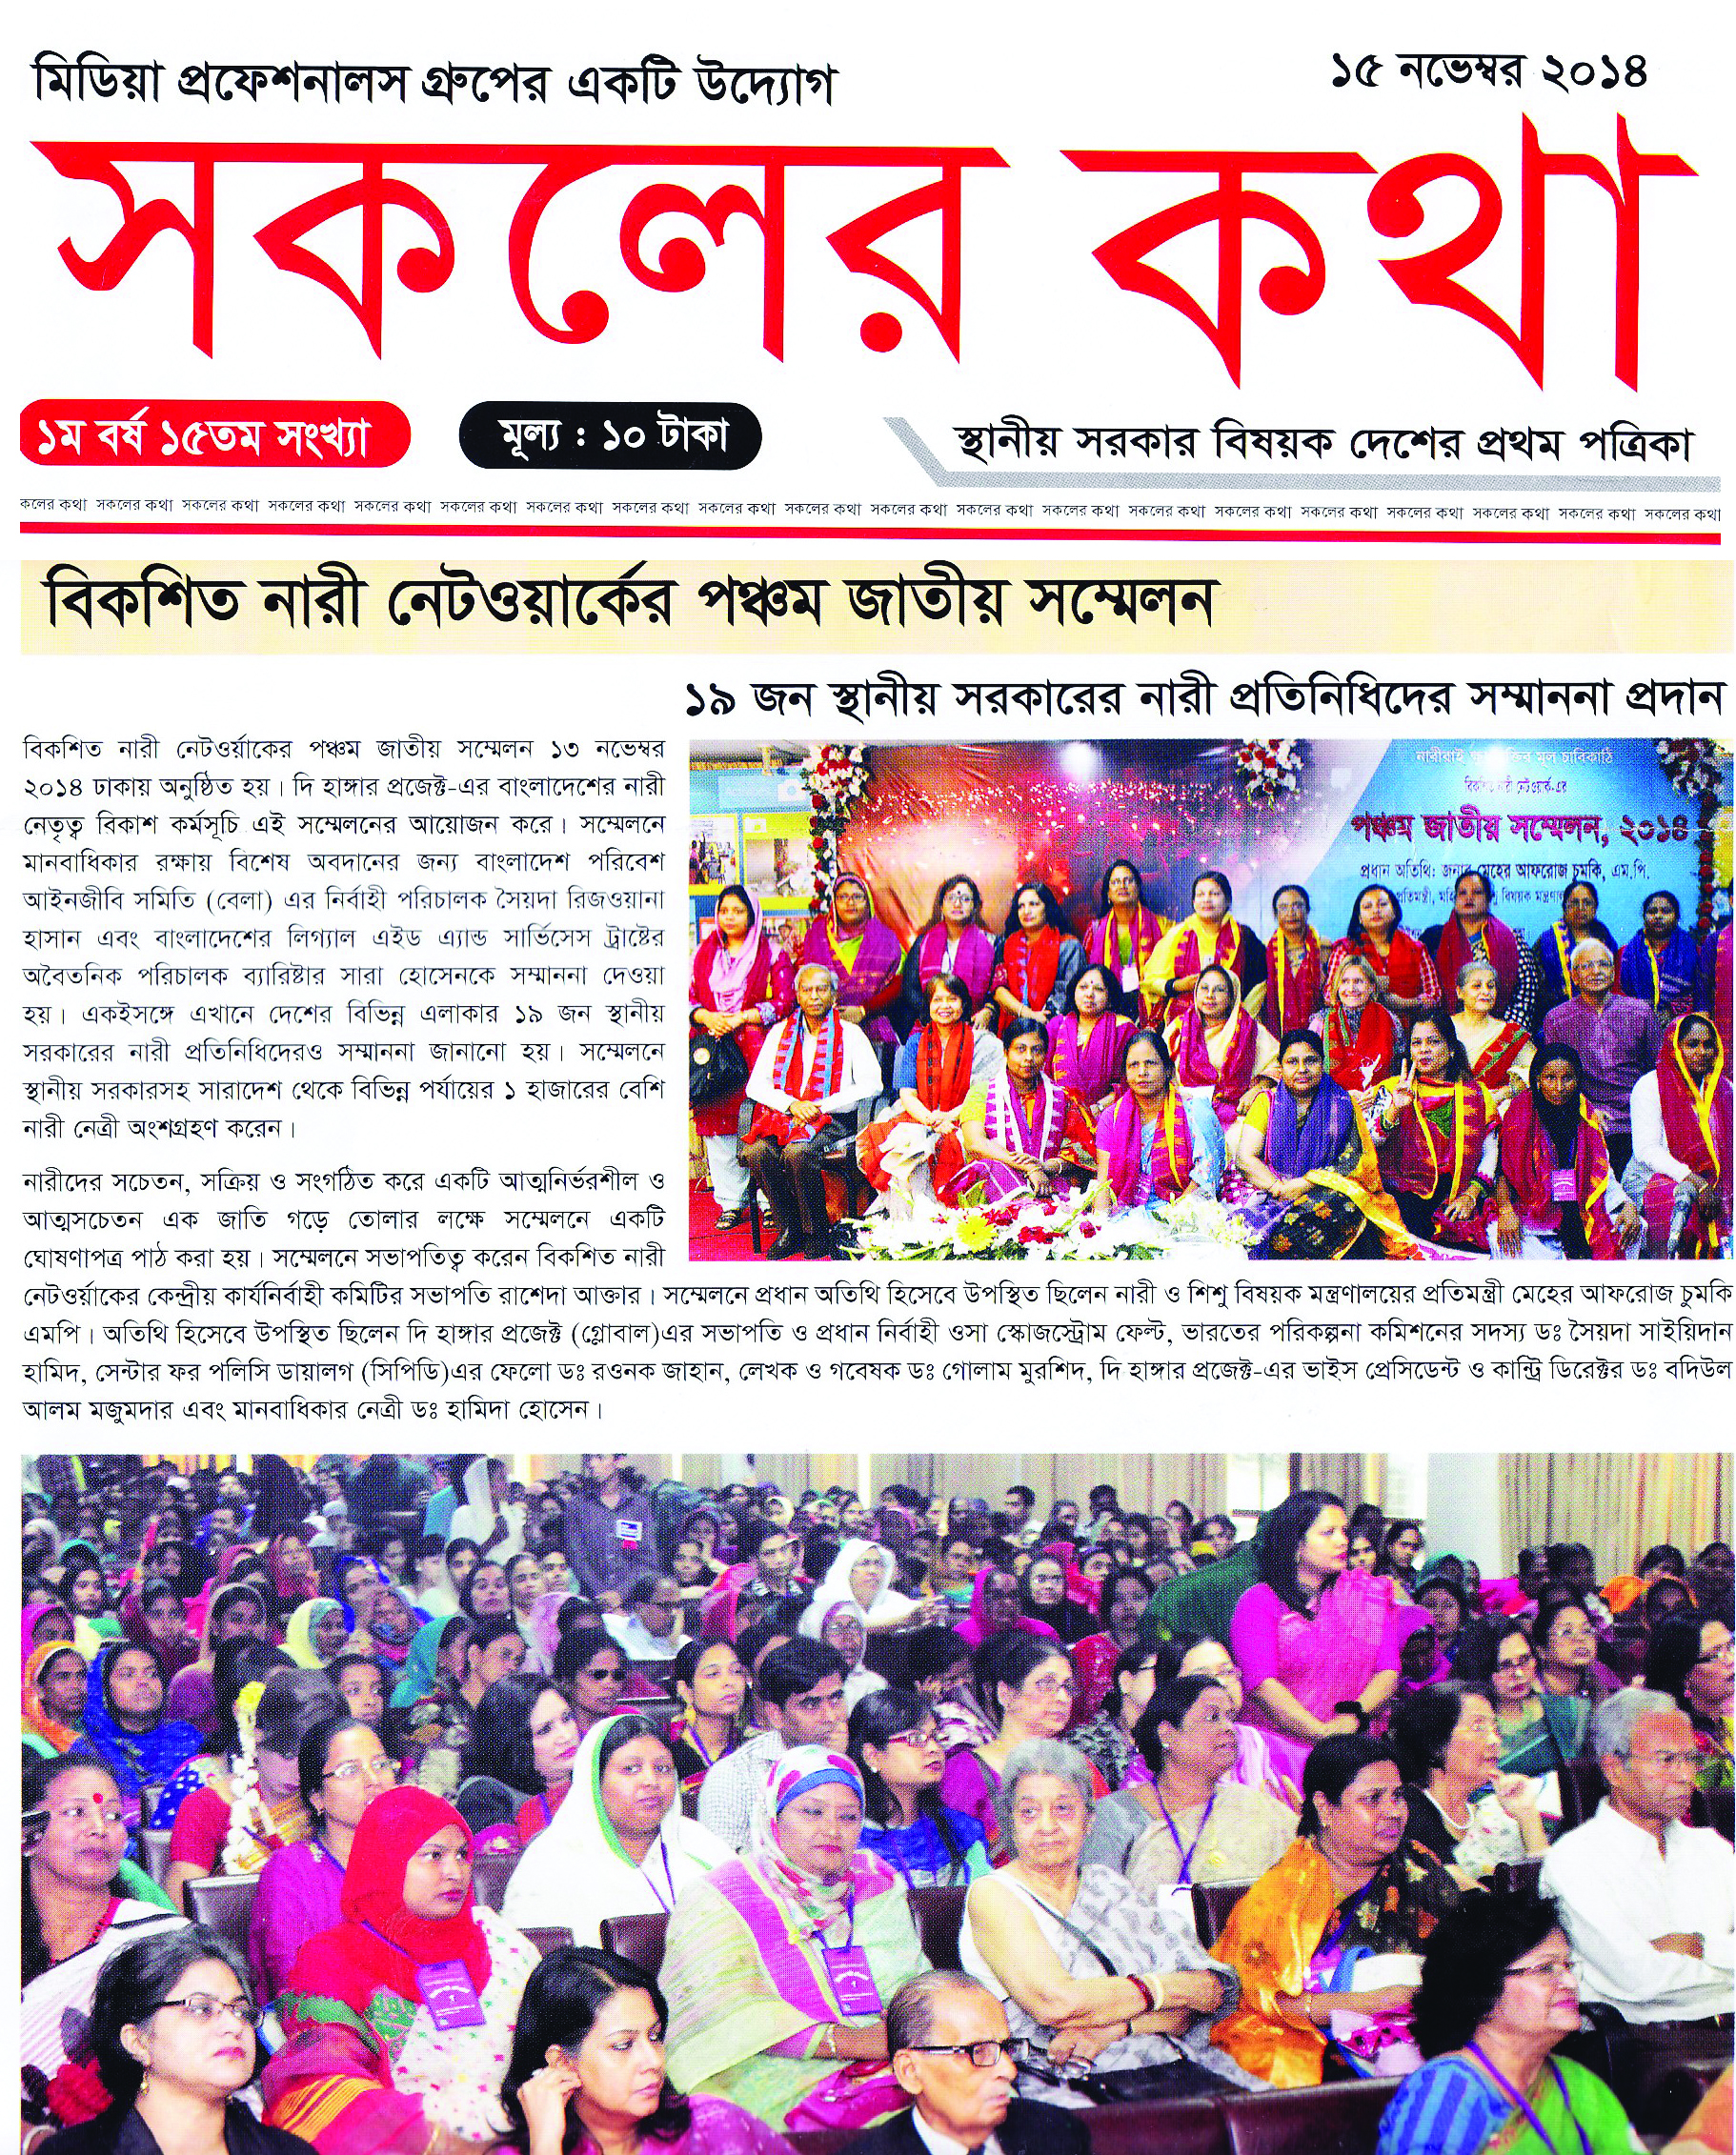 BNN conference news in LOGIN newsletter Sokoler Kotha